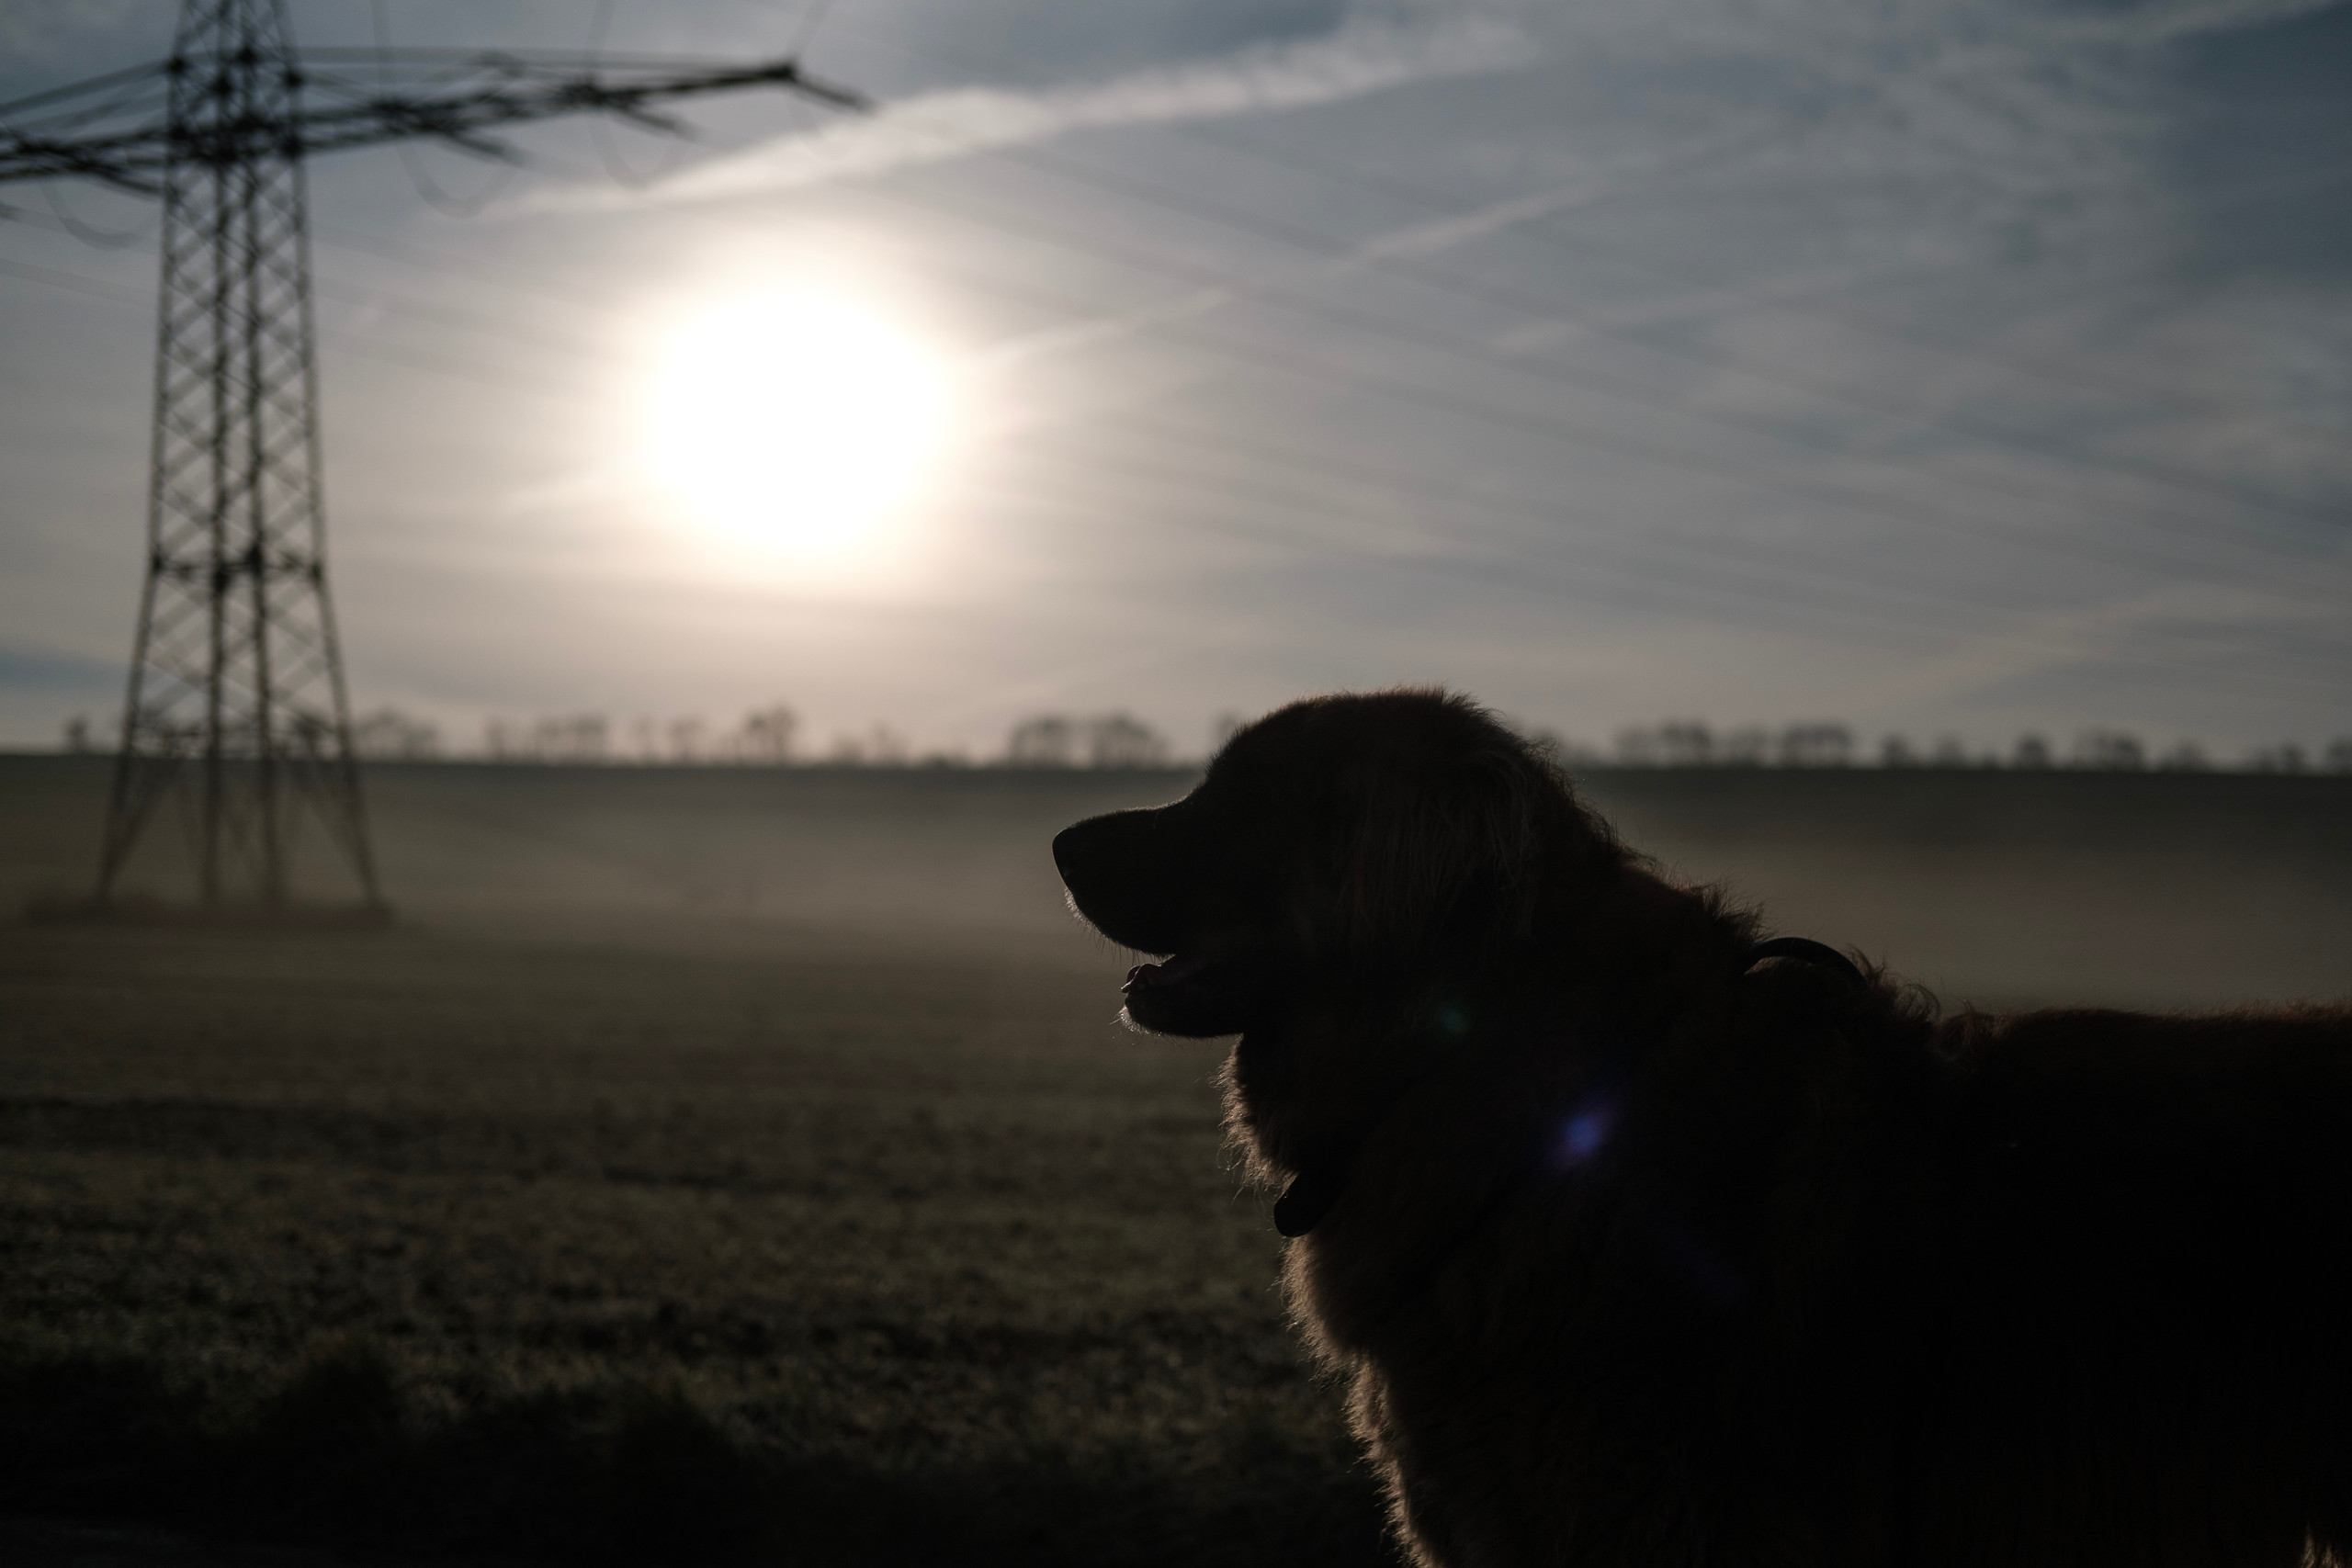 Backlight portrait of a large dog in front of a foggy field